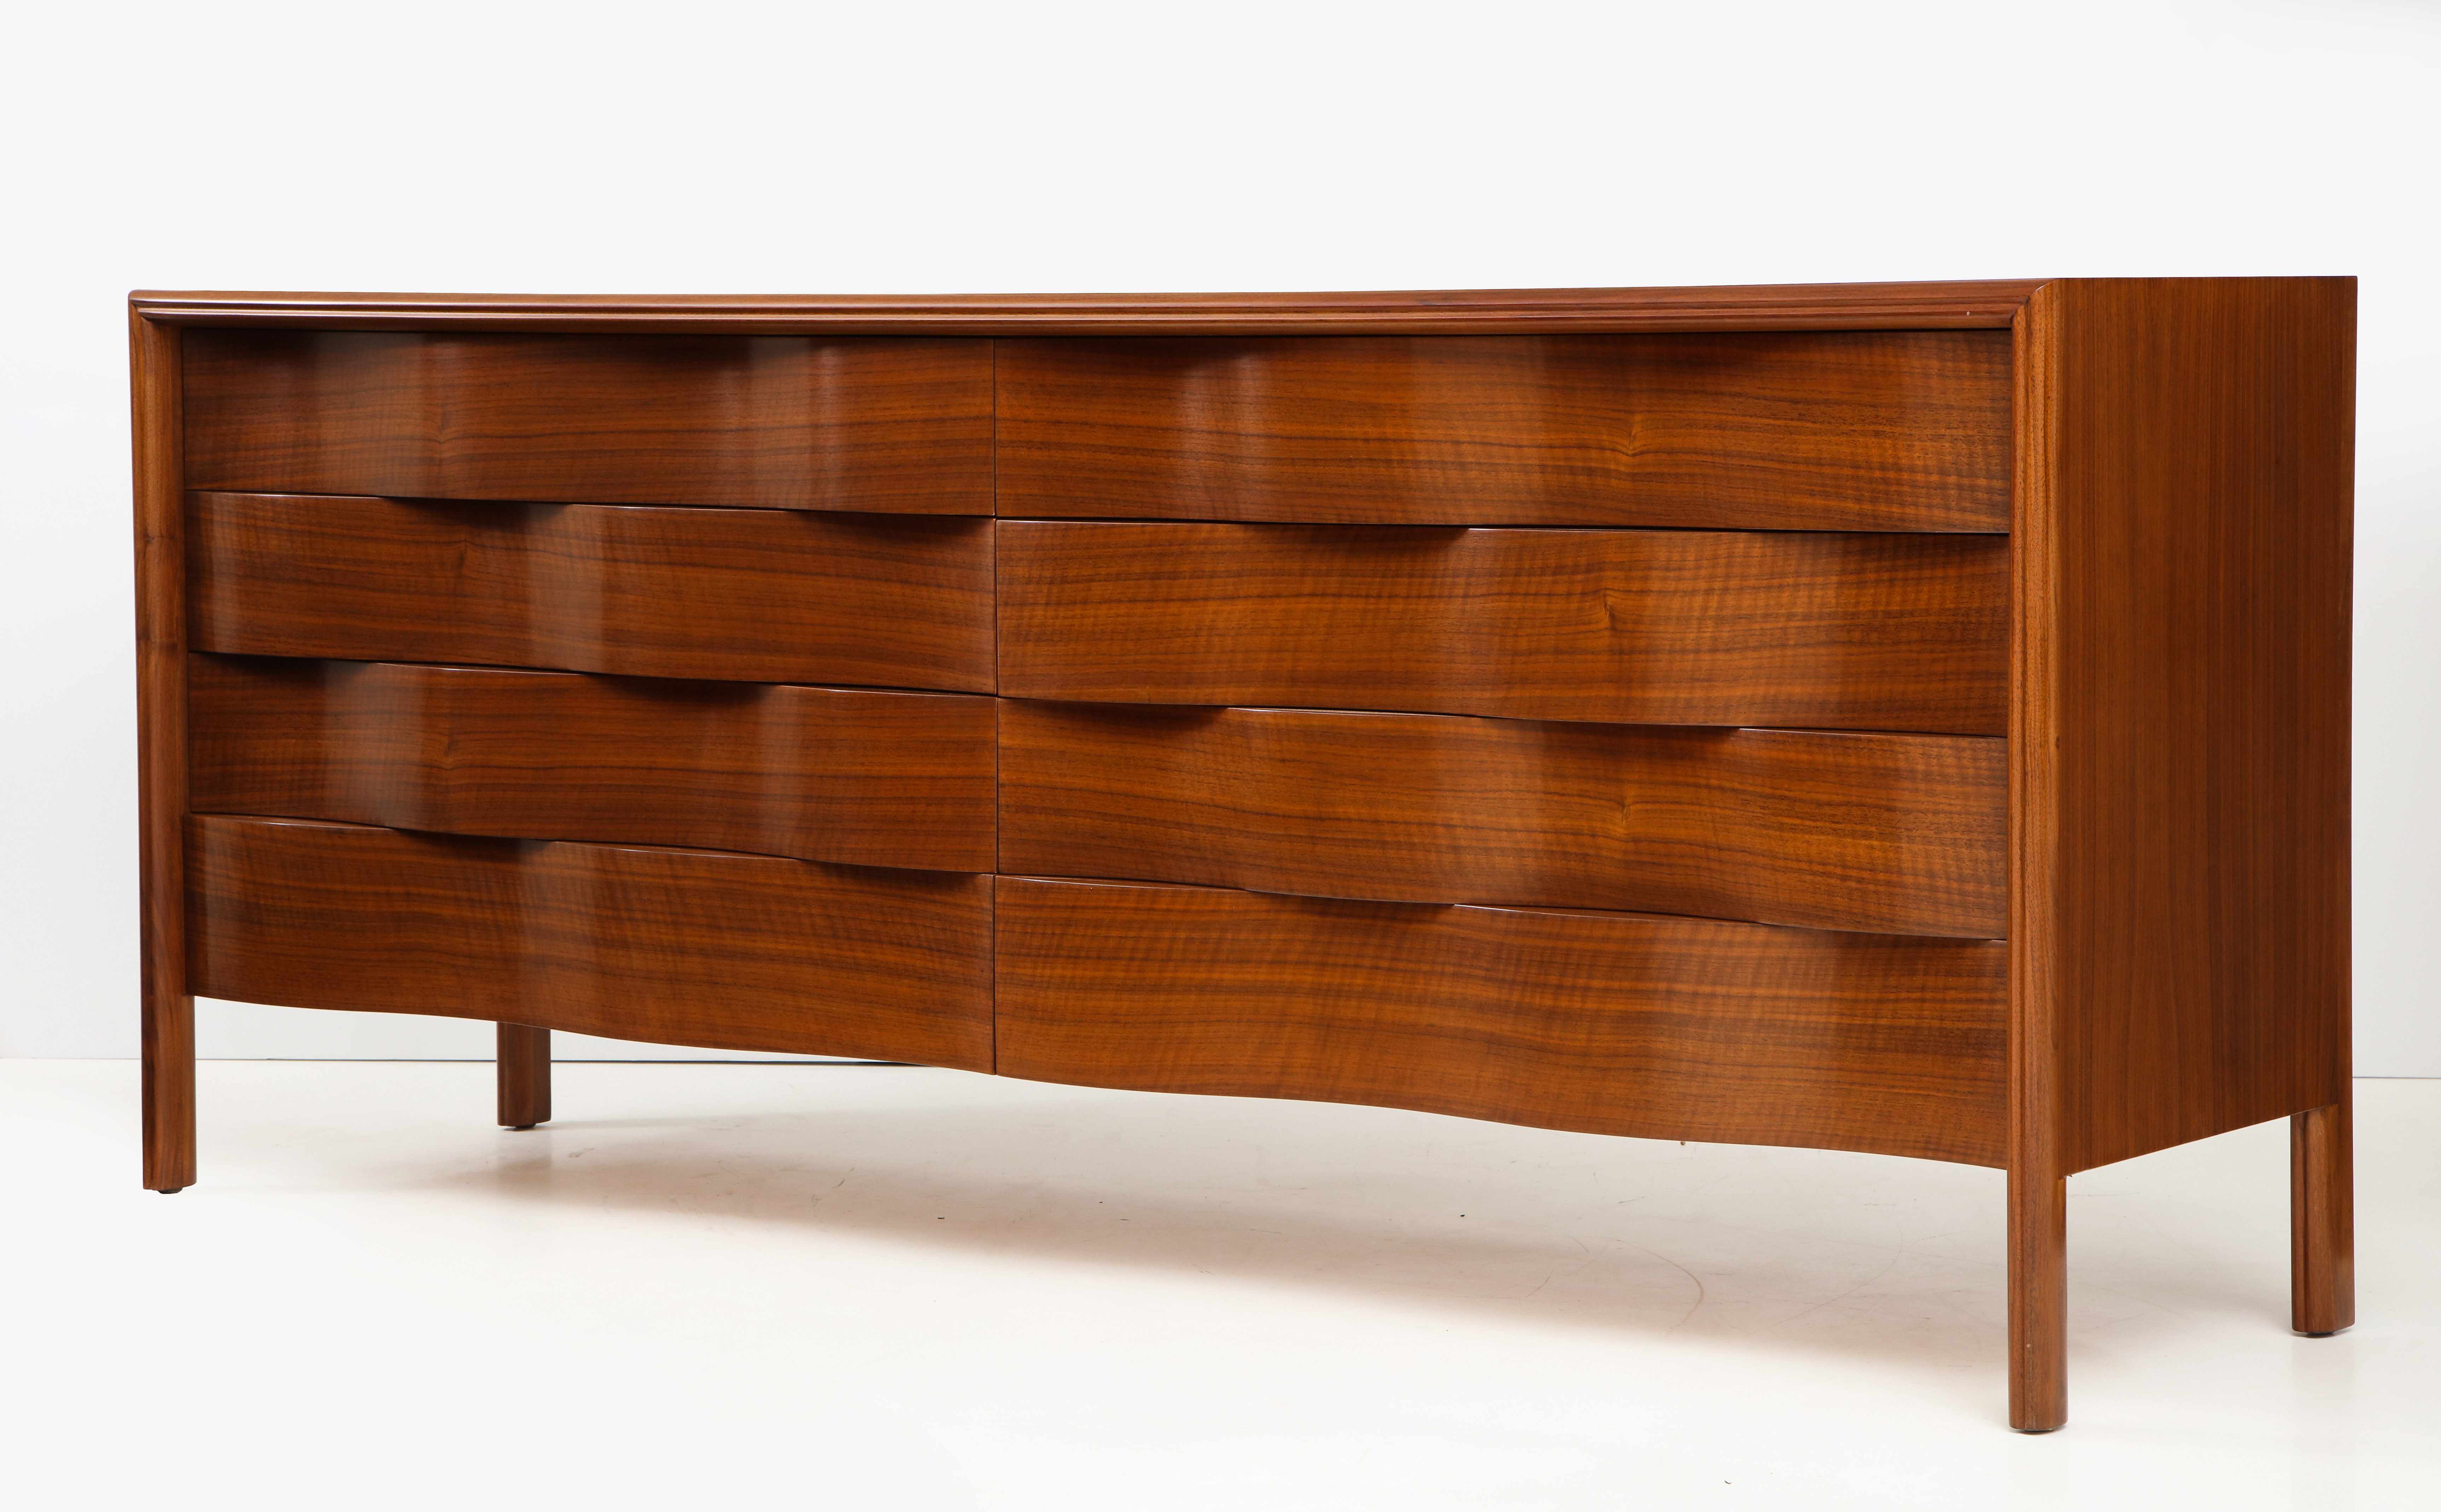 A long chest with eight drawers, Edmond Spence, Sweden, 1950.